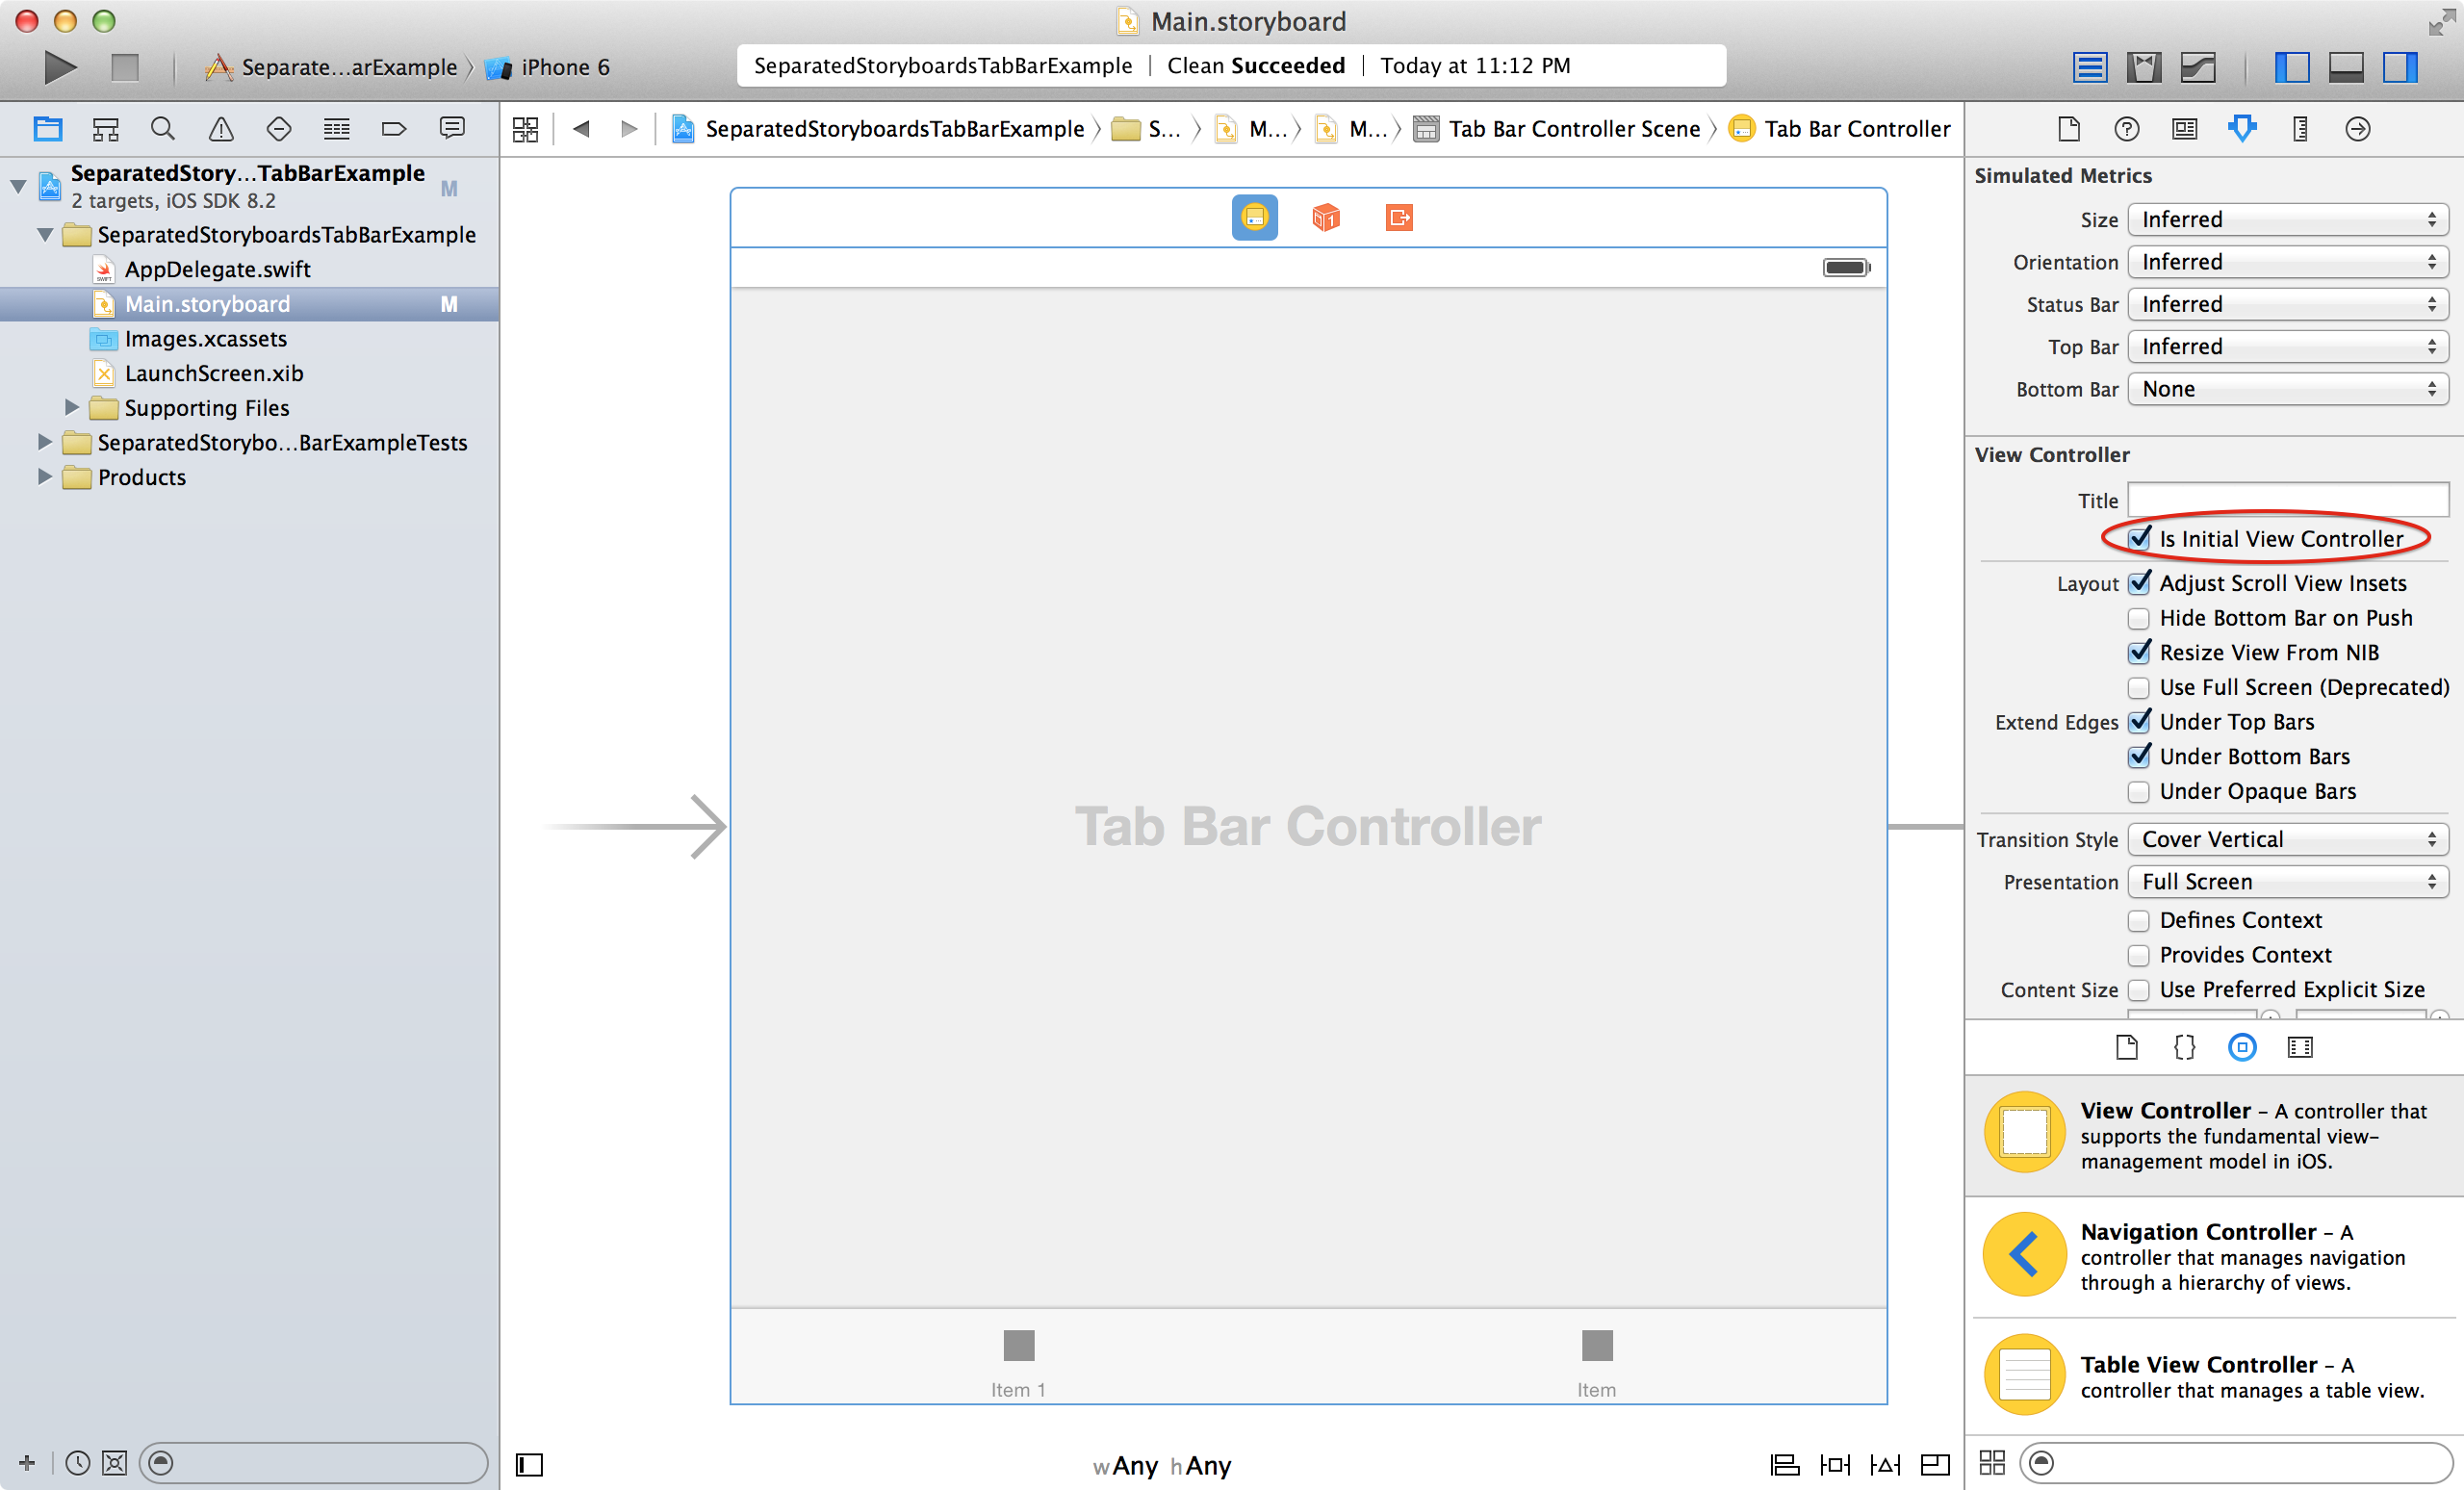 Separated Storyboards for Tab Bar Controllers